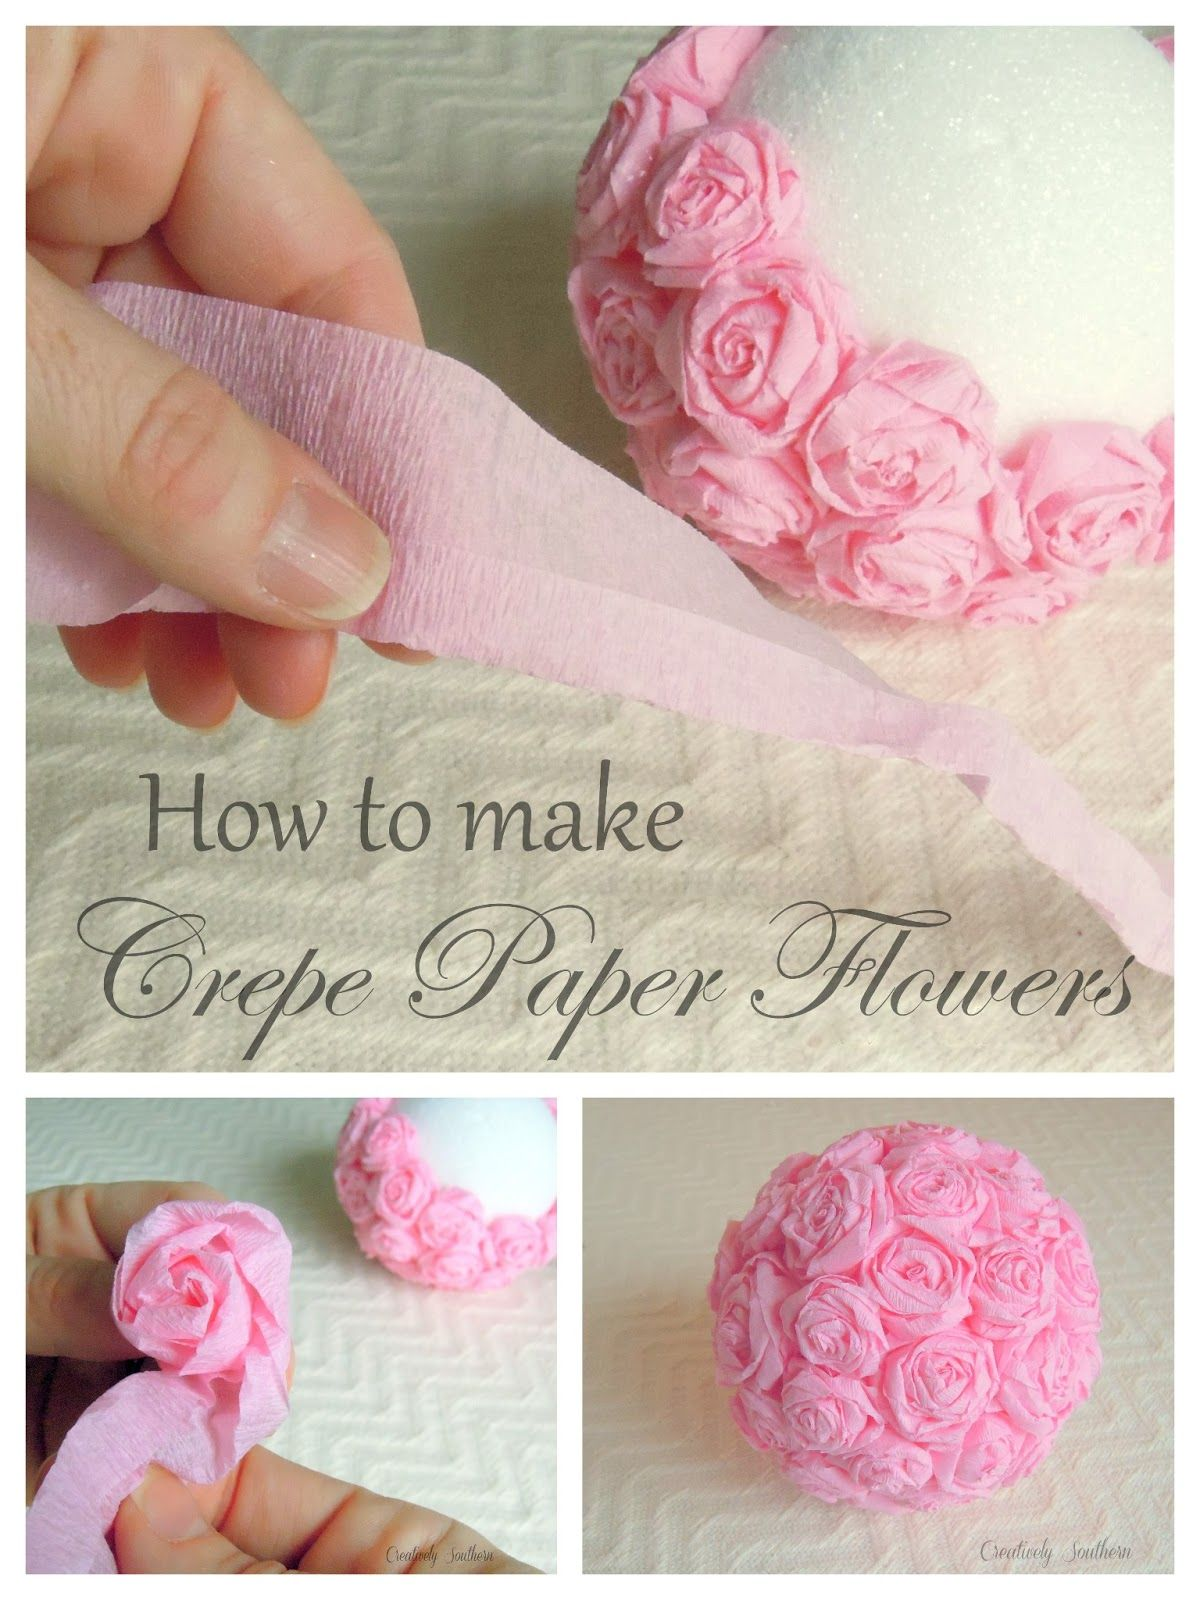 Crepe Paper Flowers Craft Idea Crepe Paper Crepes And Crepe Paper